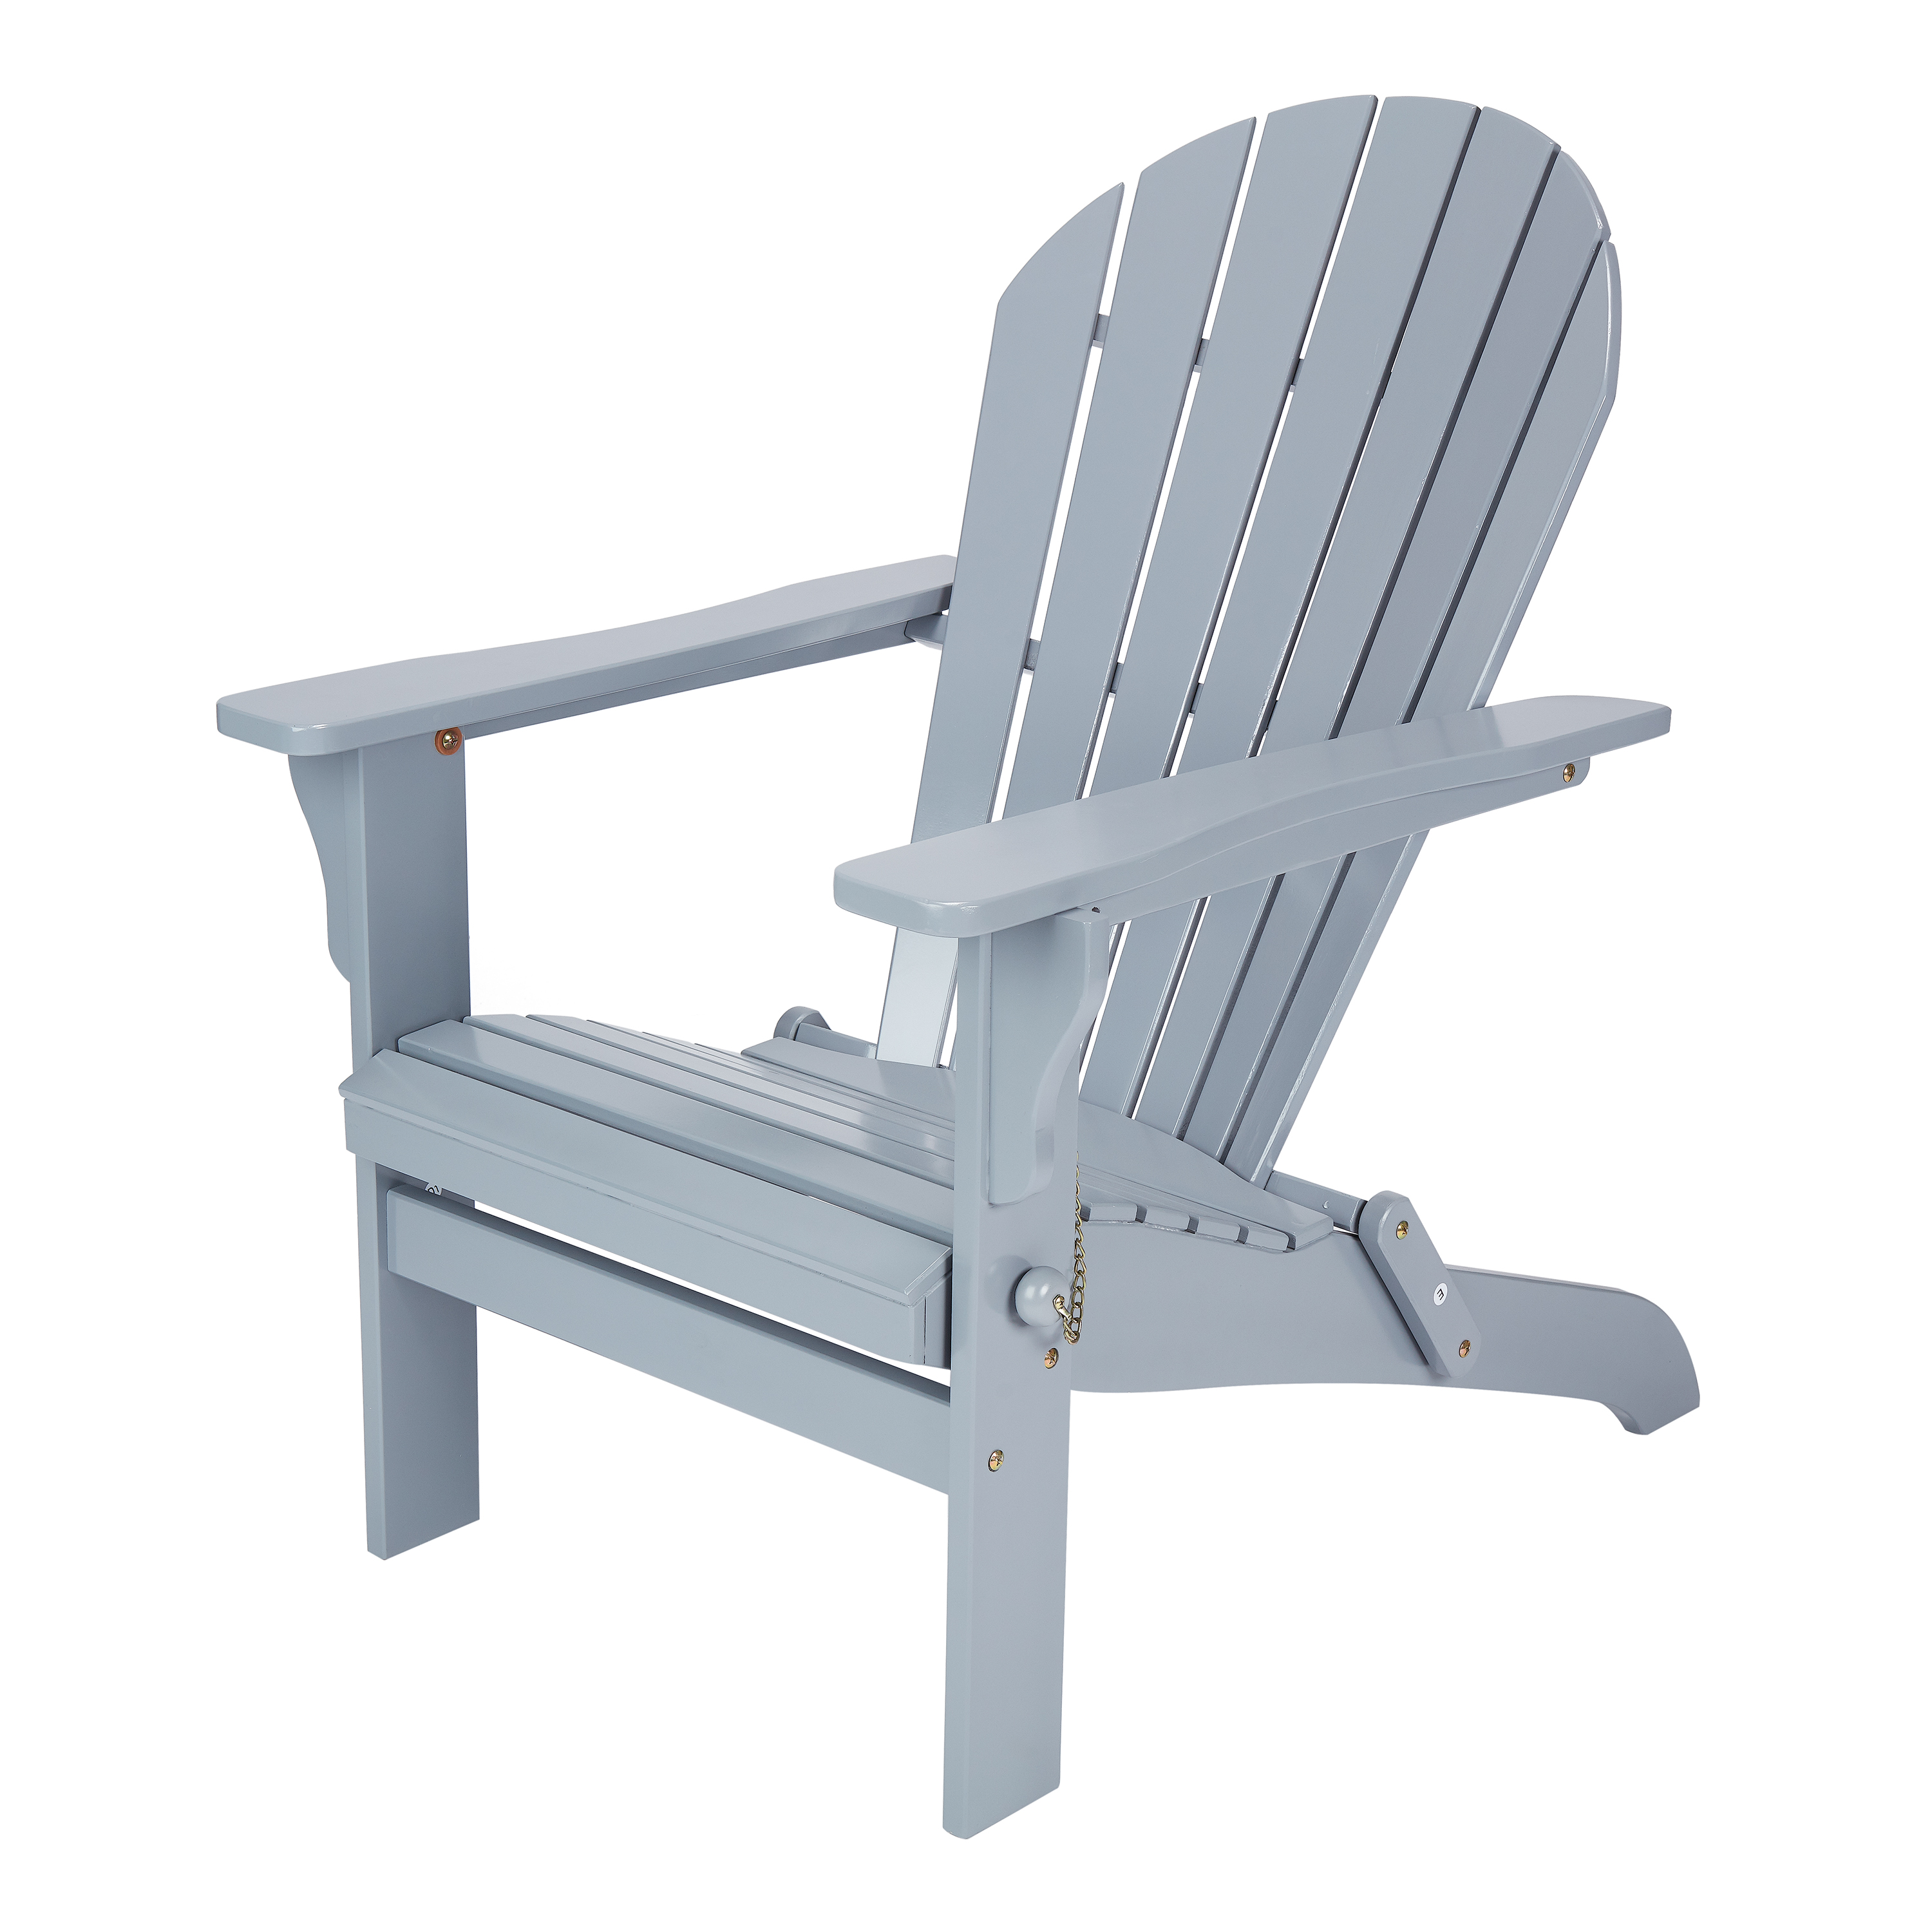 Surprising Mainstays St Barrows Folding Wood Adirondack Chair Multiple Colors Walmart Com Beatyapartments Chair Design Images Beatyapartmentscom